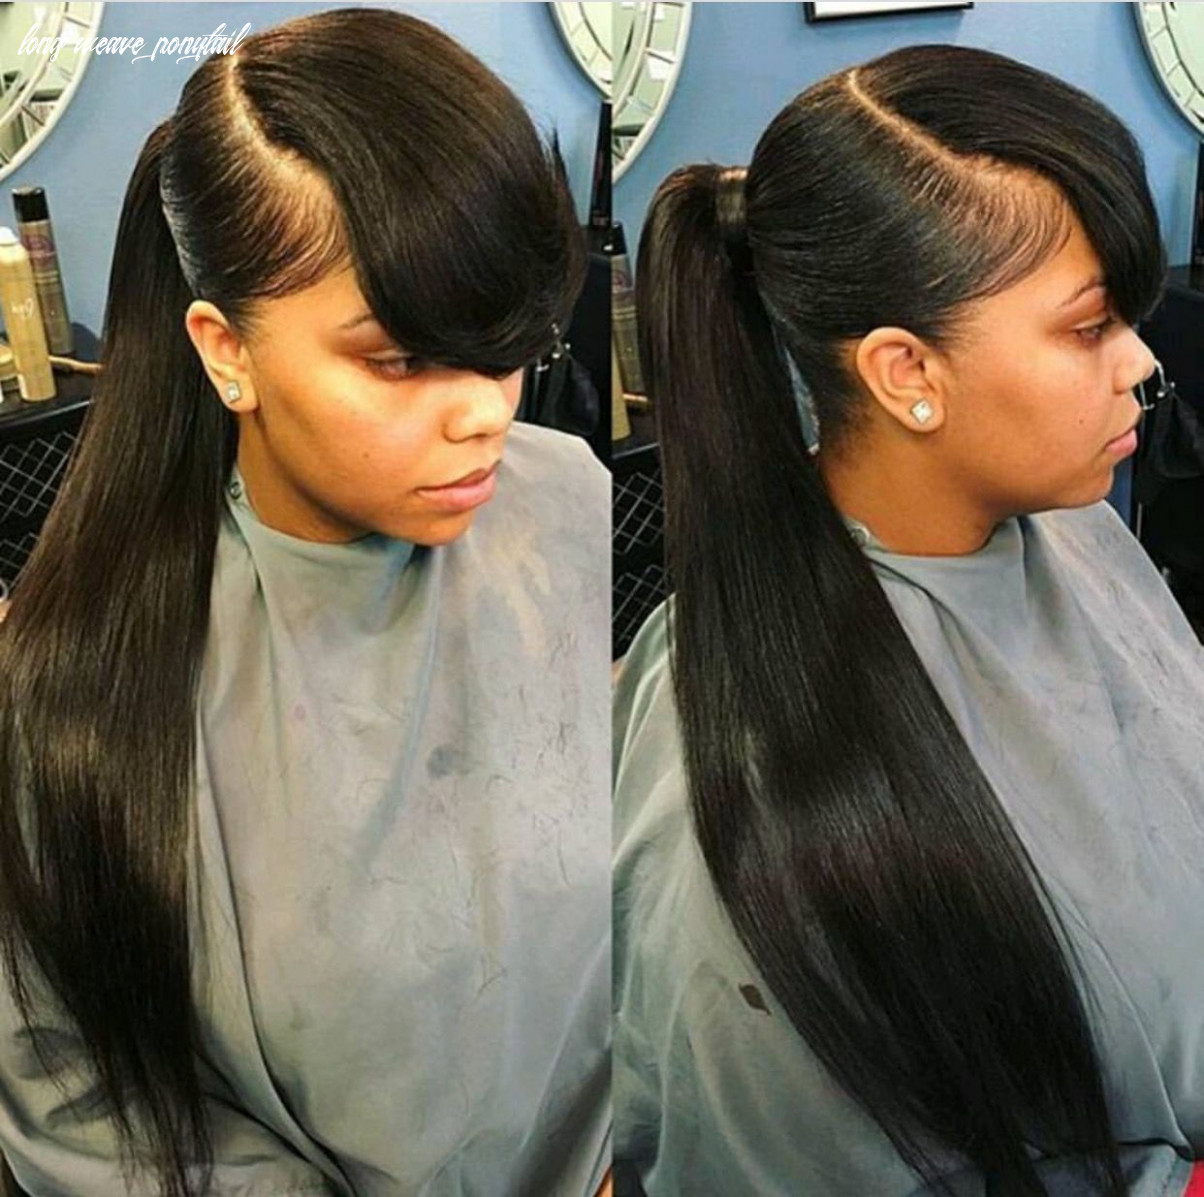 "TheExtraMile!"" - long pony and bangs. 